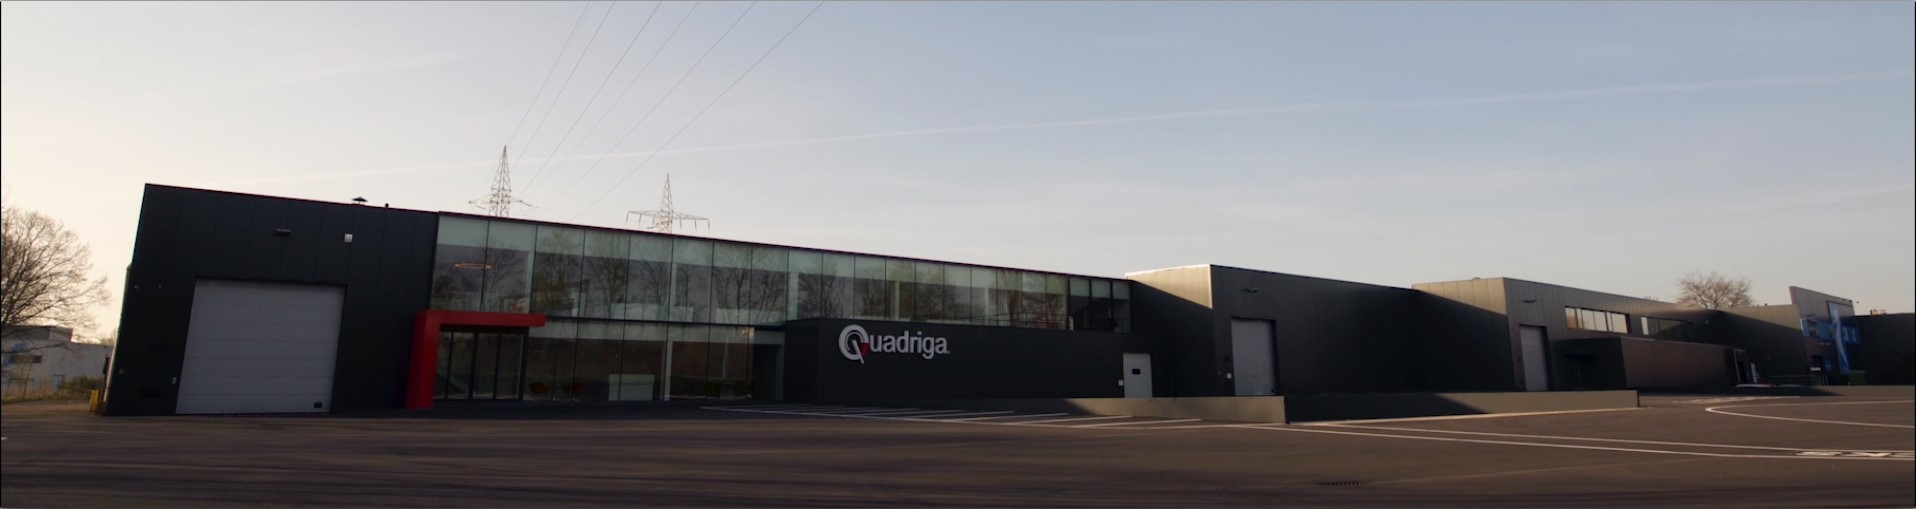 Quadriga Car Retail